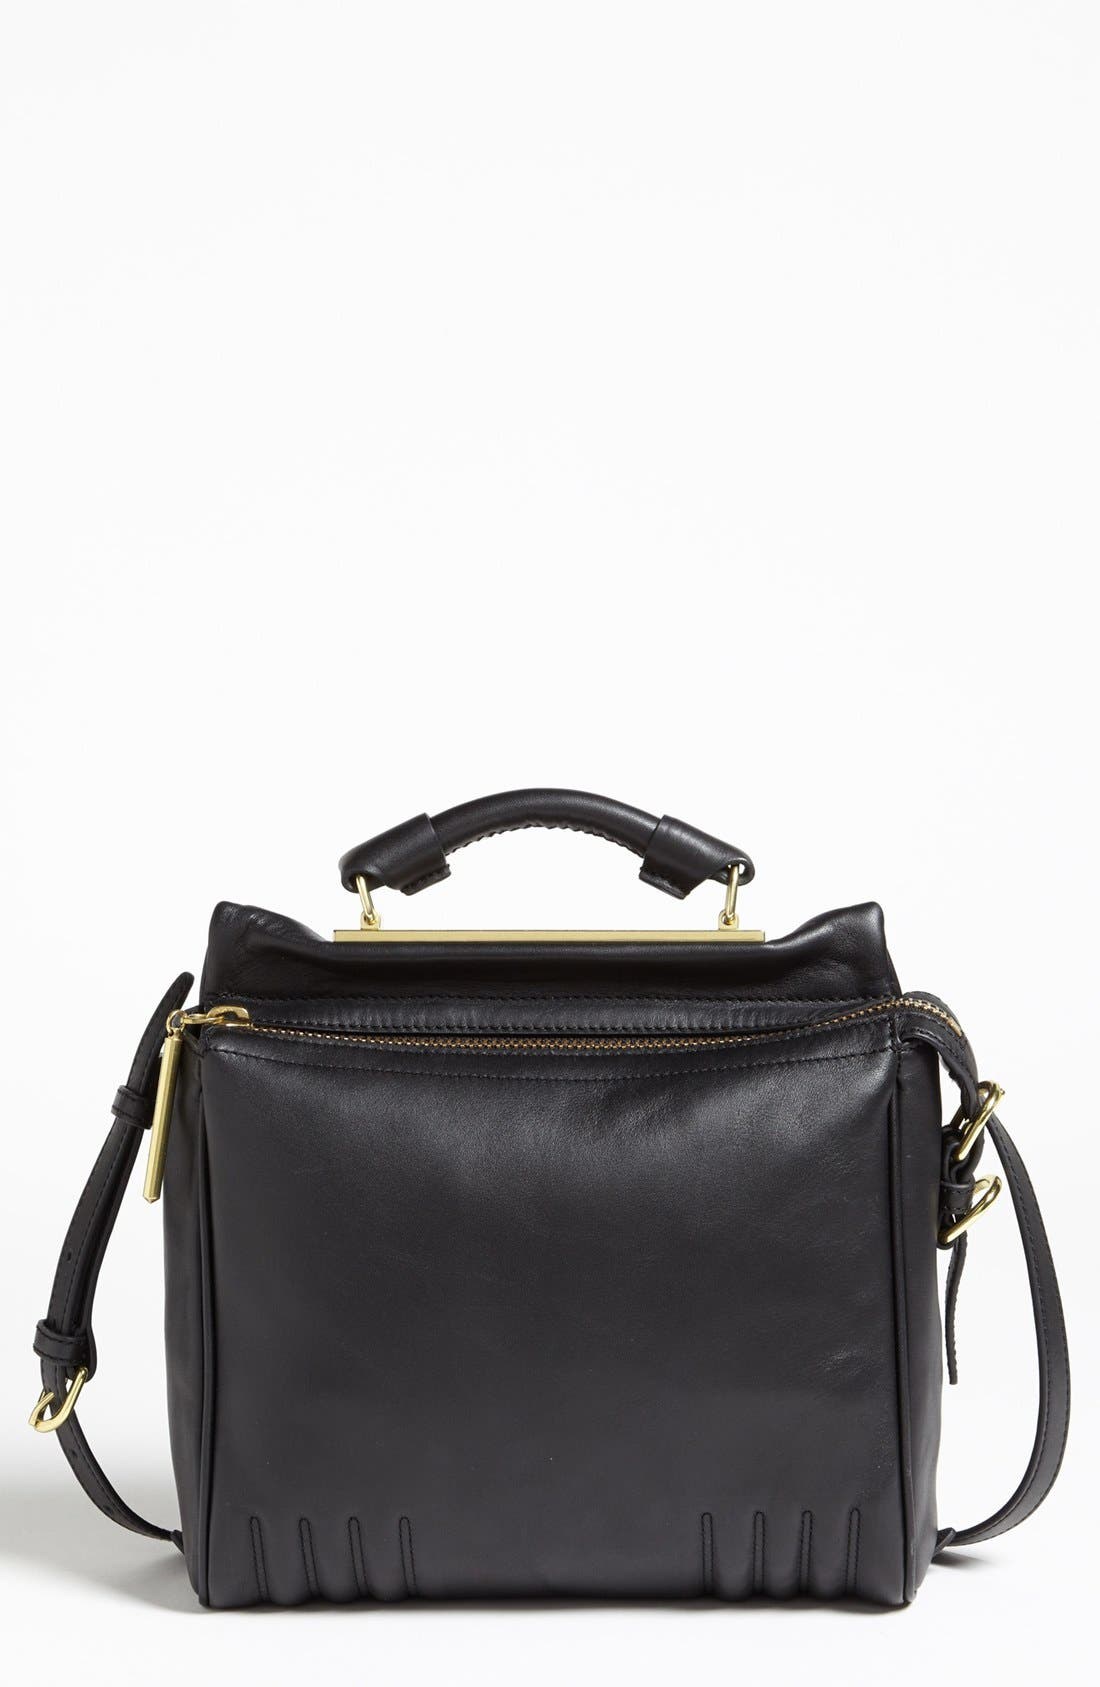 Alternate Image 1 Selected - 3.1 Phillip Lim 'Small Ryder' Leather Satchel